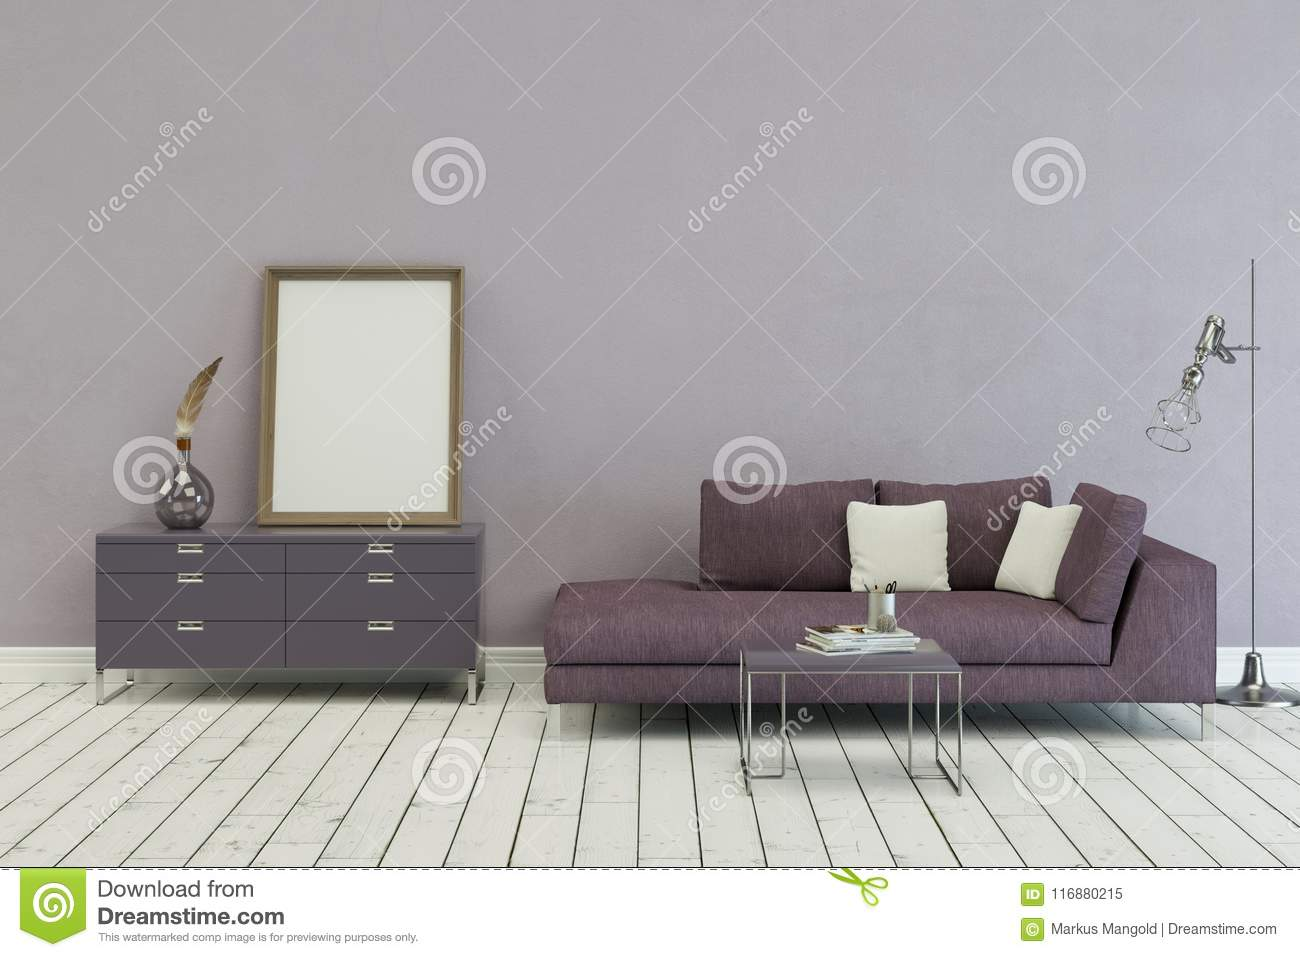 Couch Lila Lila Sofa In Modern Scandinavian Design Stock Illustration - Illustration Of Apartment, House: 116880215